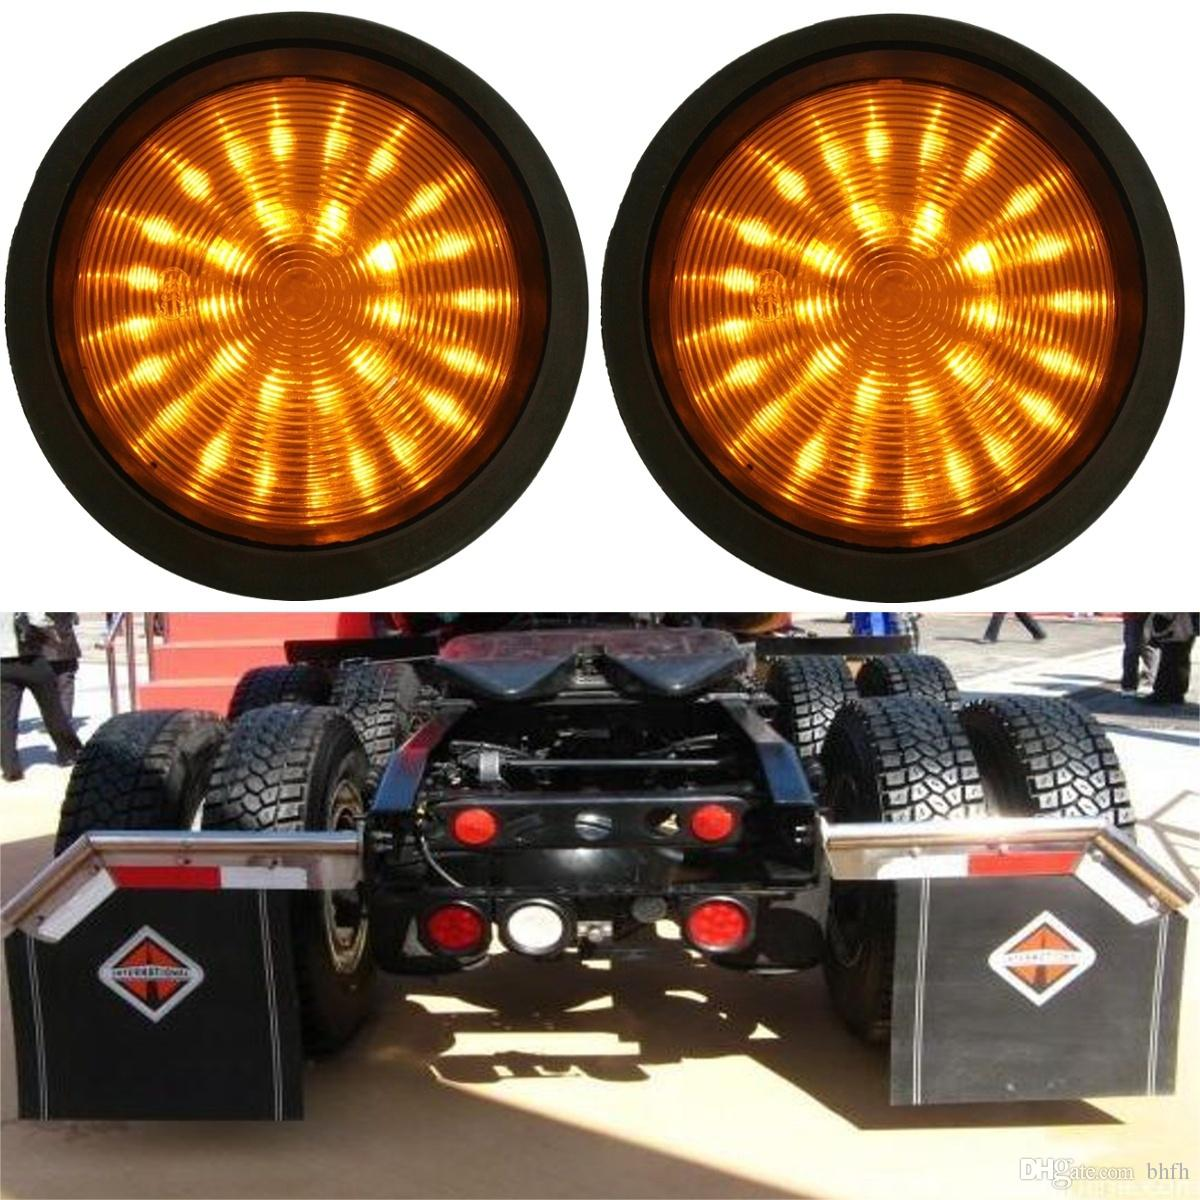 Trailer Accessories Led Truck And Lights Super Bright Leds 2x 30 Round Rear Lamp Tail Stop Brake Light Lorry Caravan Yellow Online With 2787 Piece On Bhfhs Store